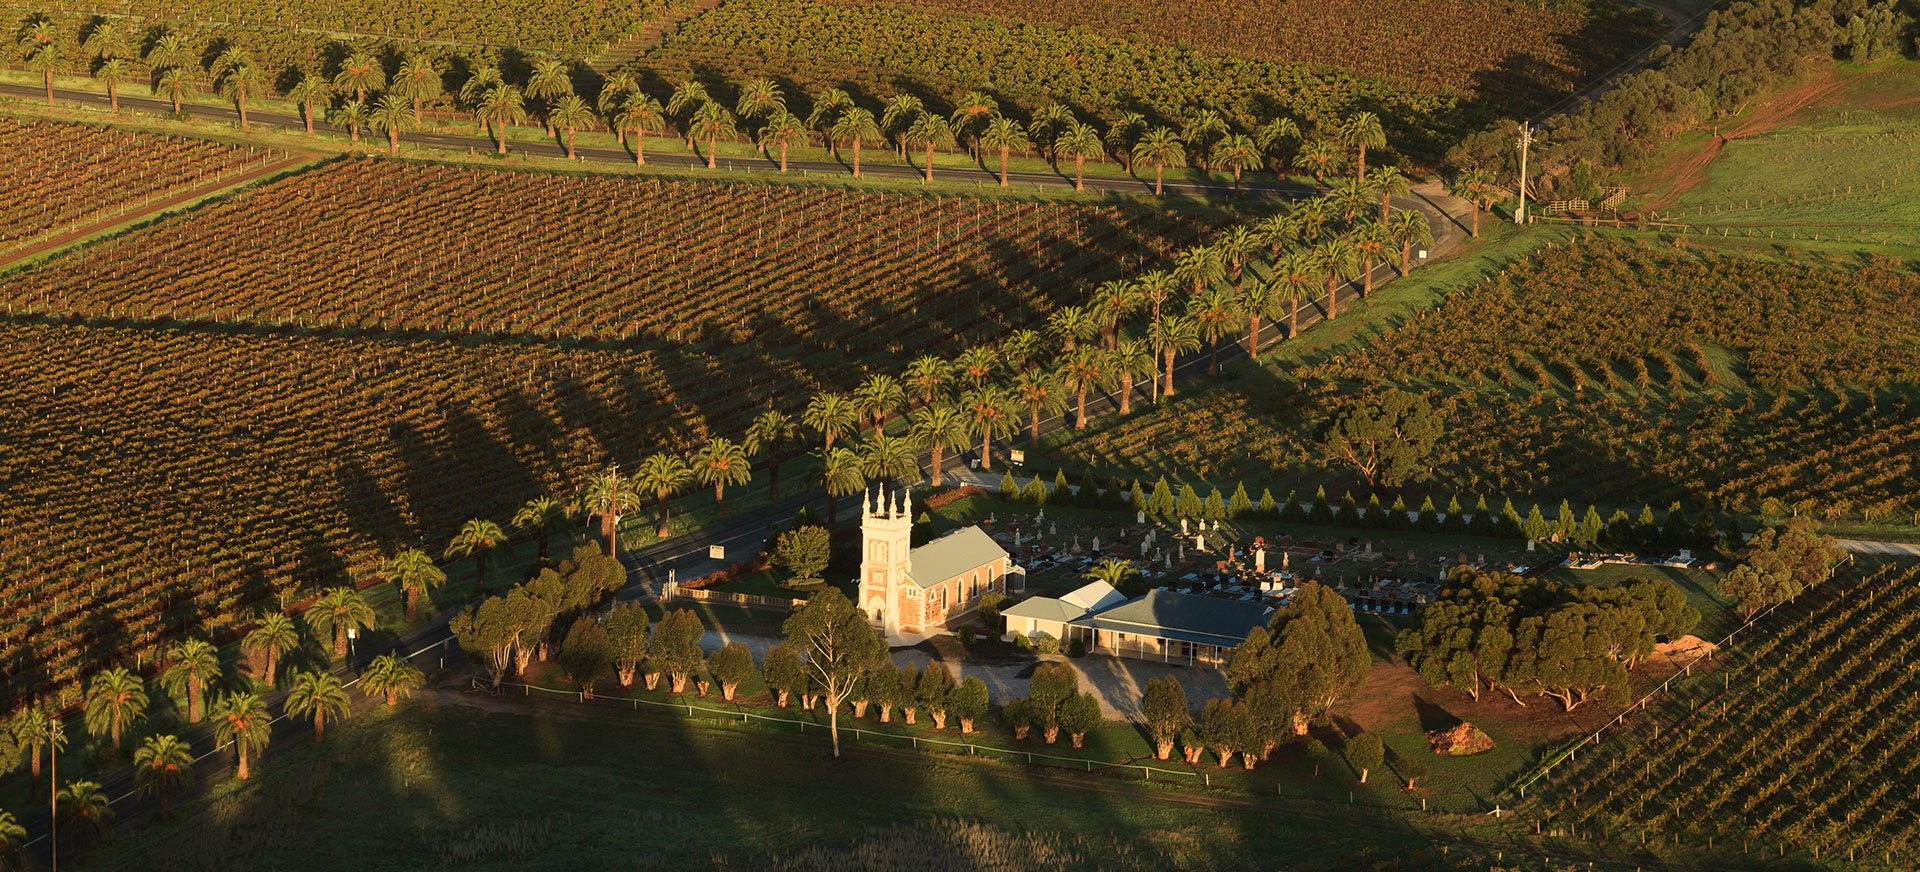 Hot air balloon flight over the Barossa Valley